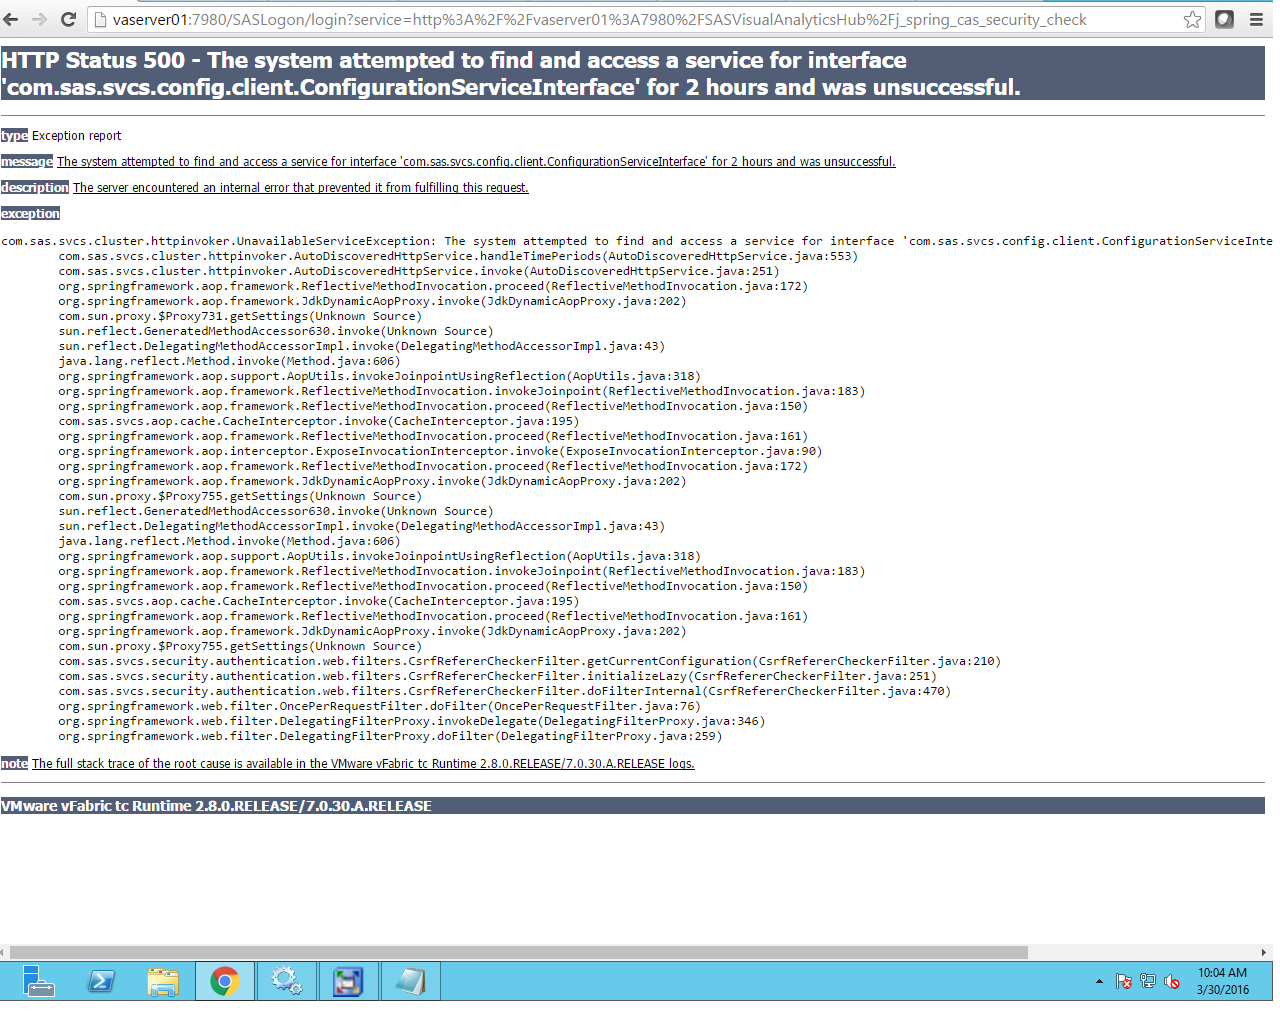 SAS Visual Analytics error - SAS Support Communities